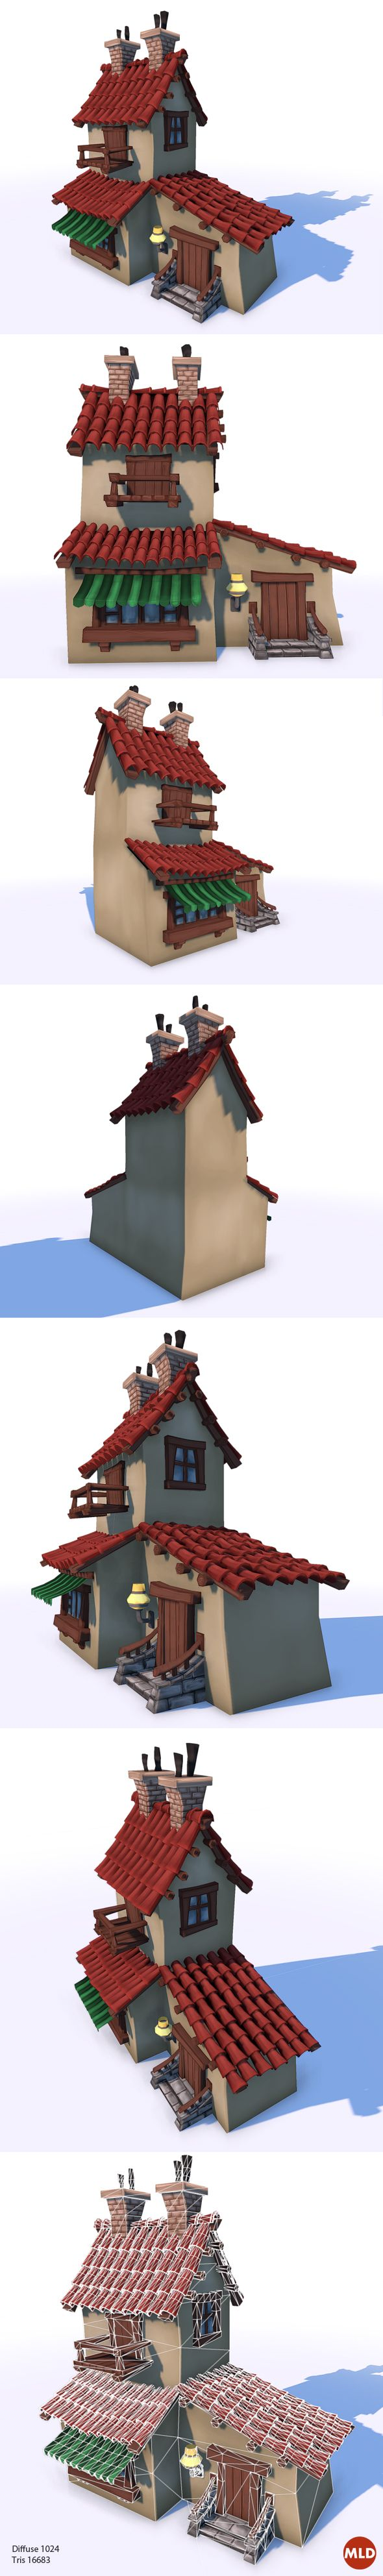 Cartoon style Low Poly house model with Hand-Paint texture.